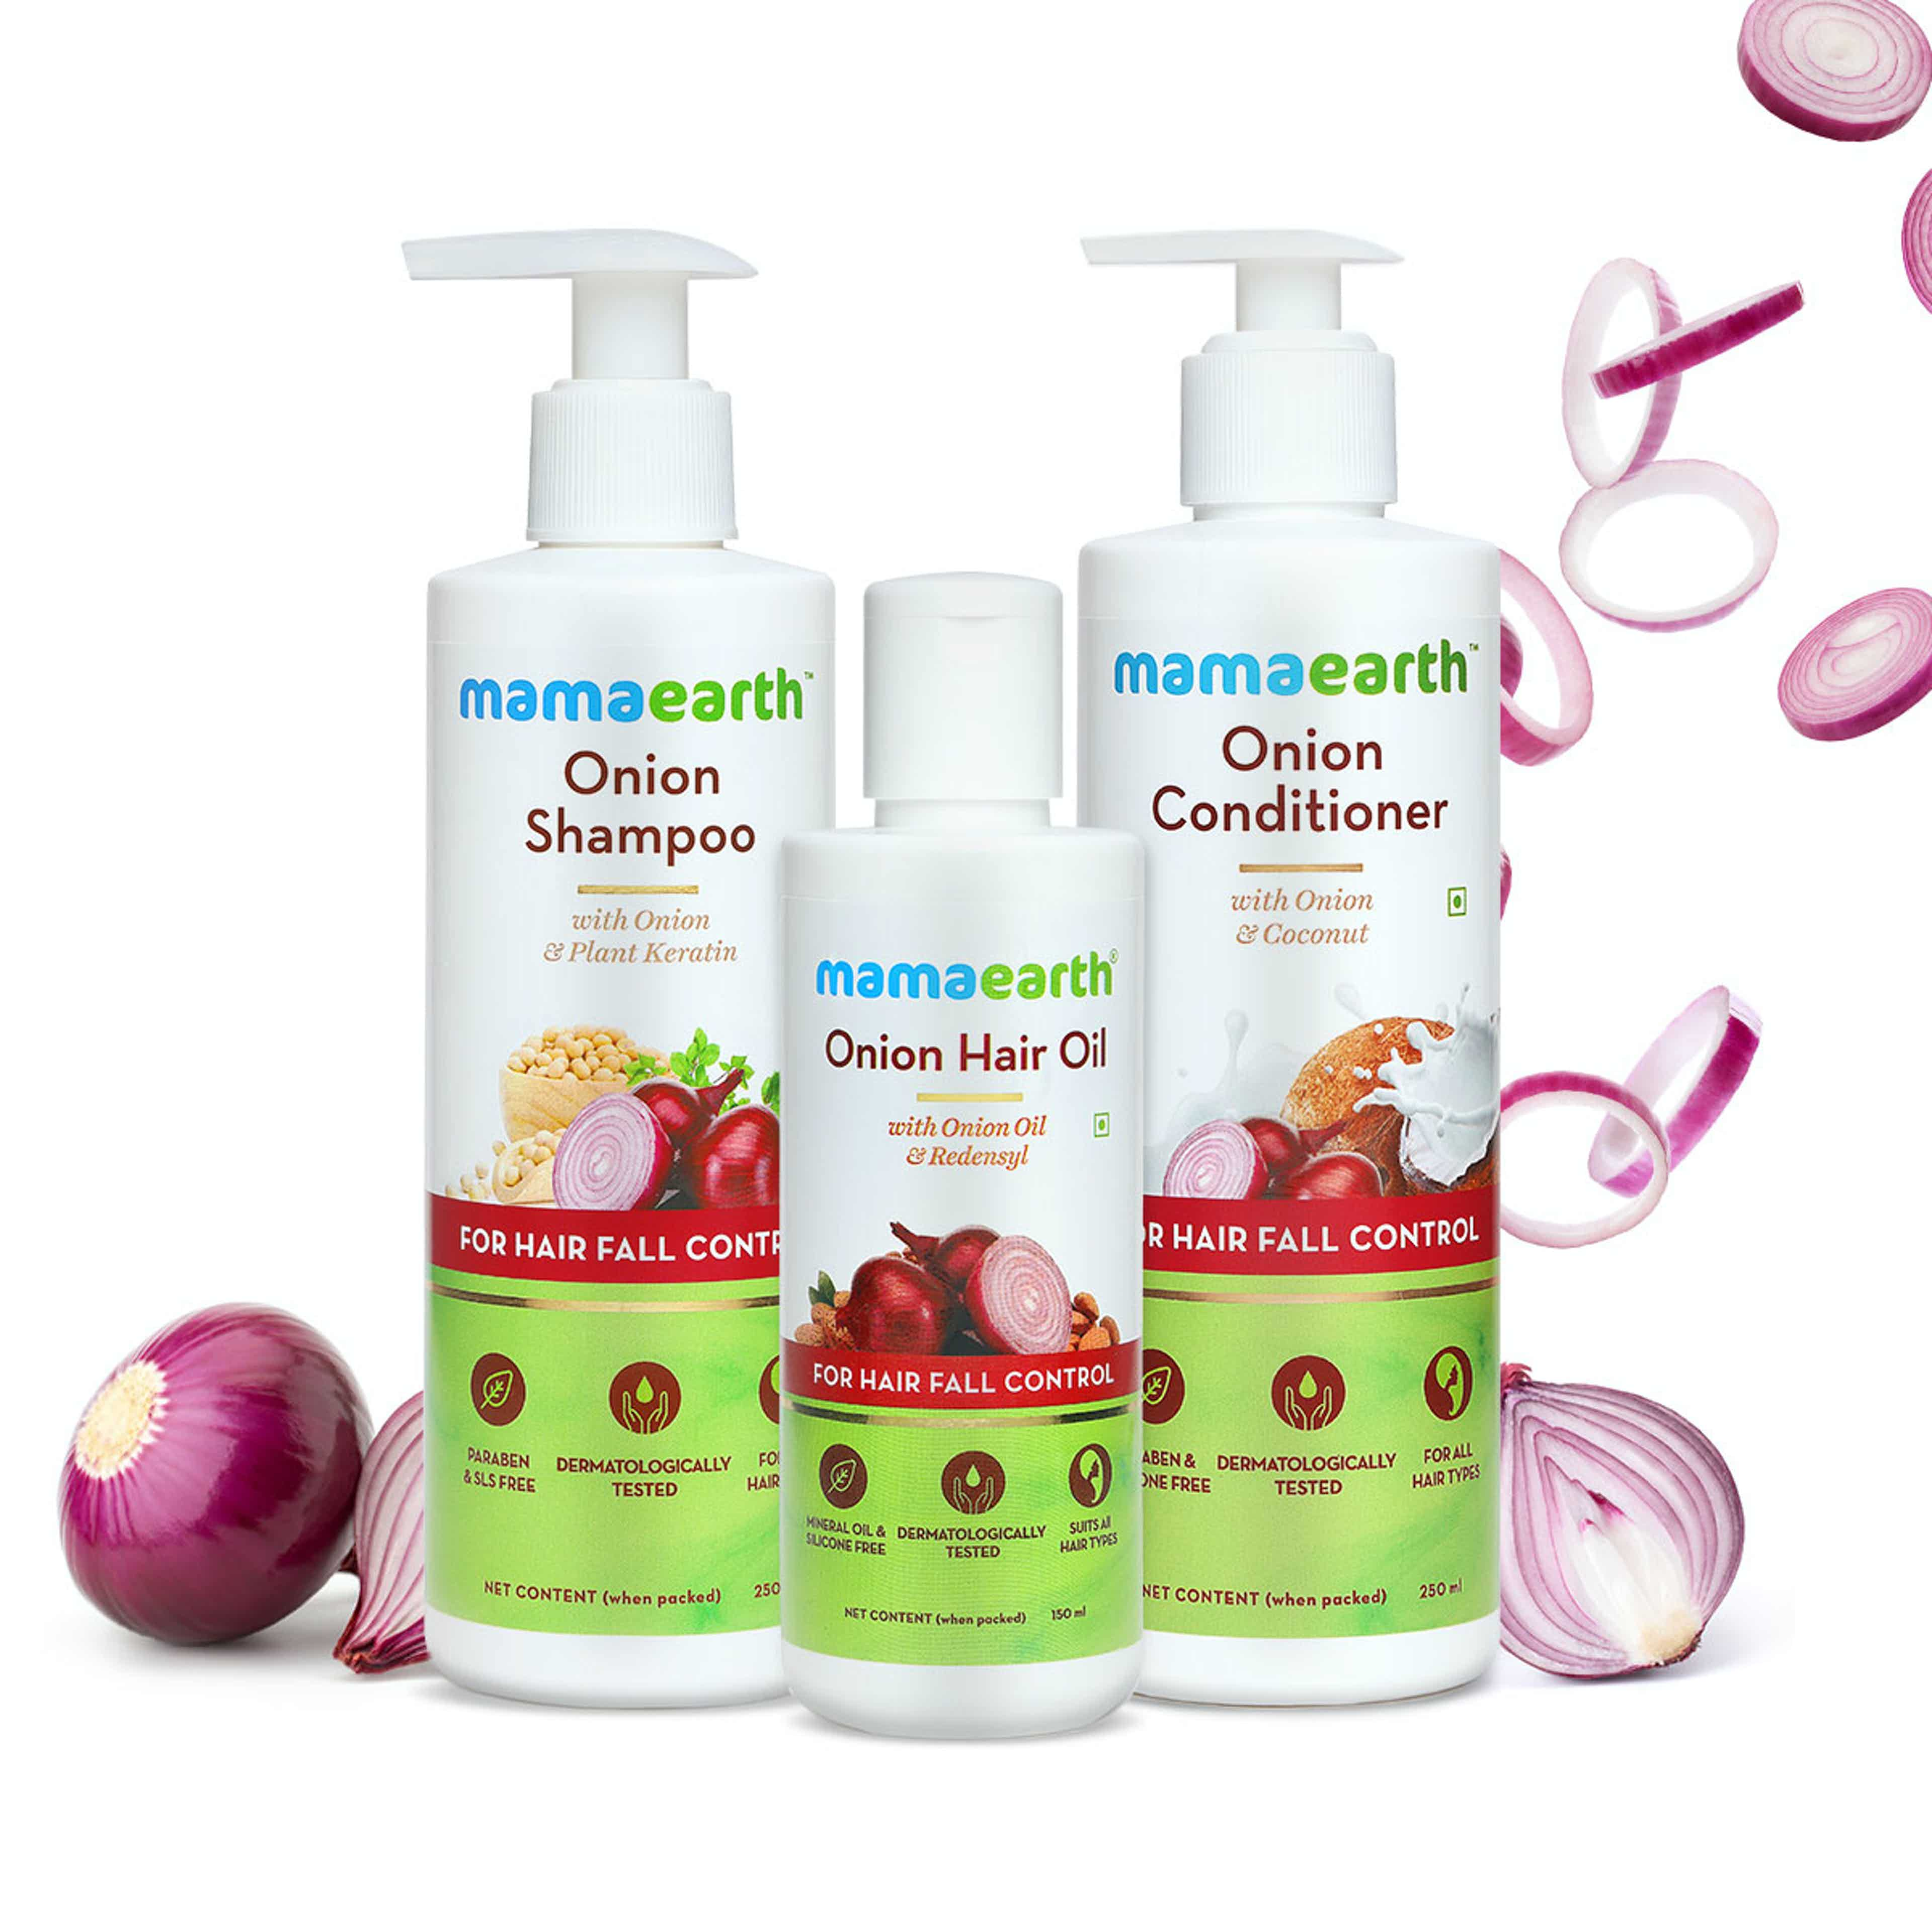 MamaEarth Coupons: Get up to 20% off on Onion Range